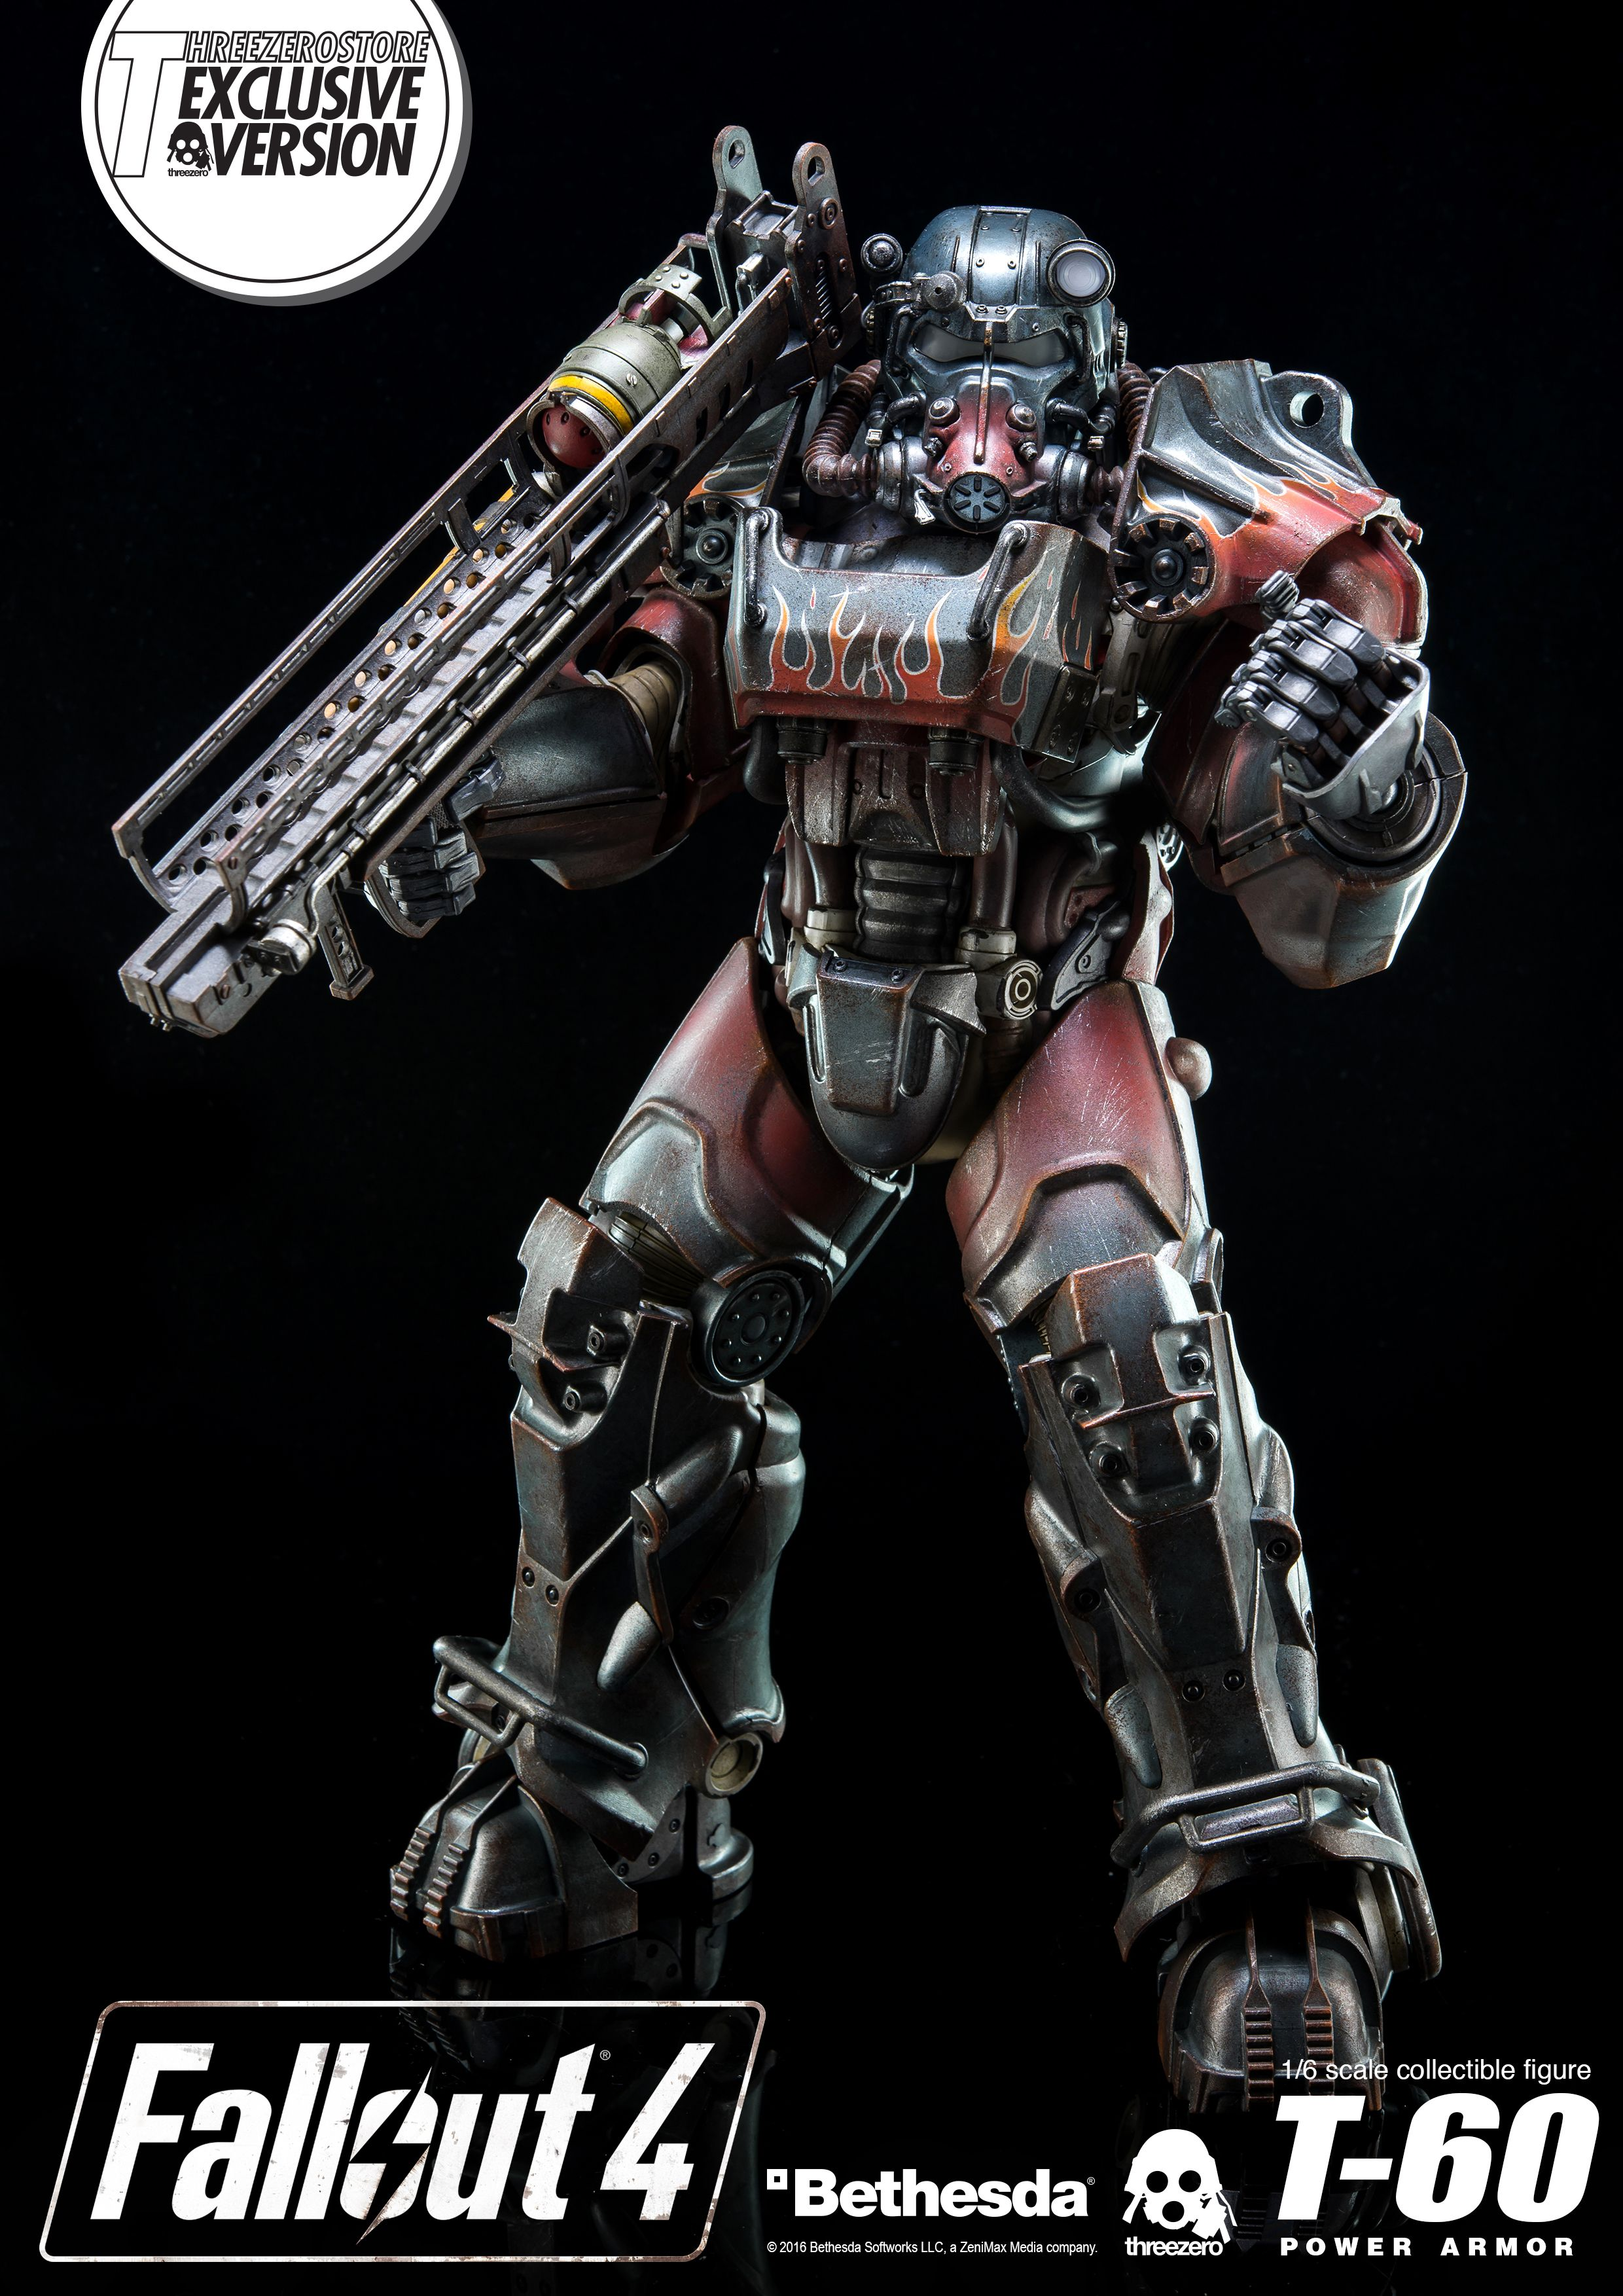 1/6th scale Fallout 4 T-60 Power Armor